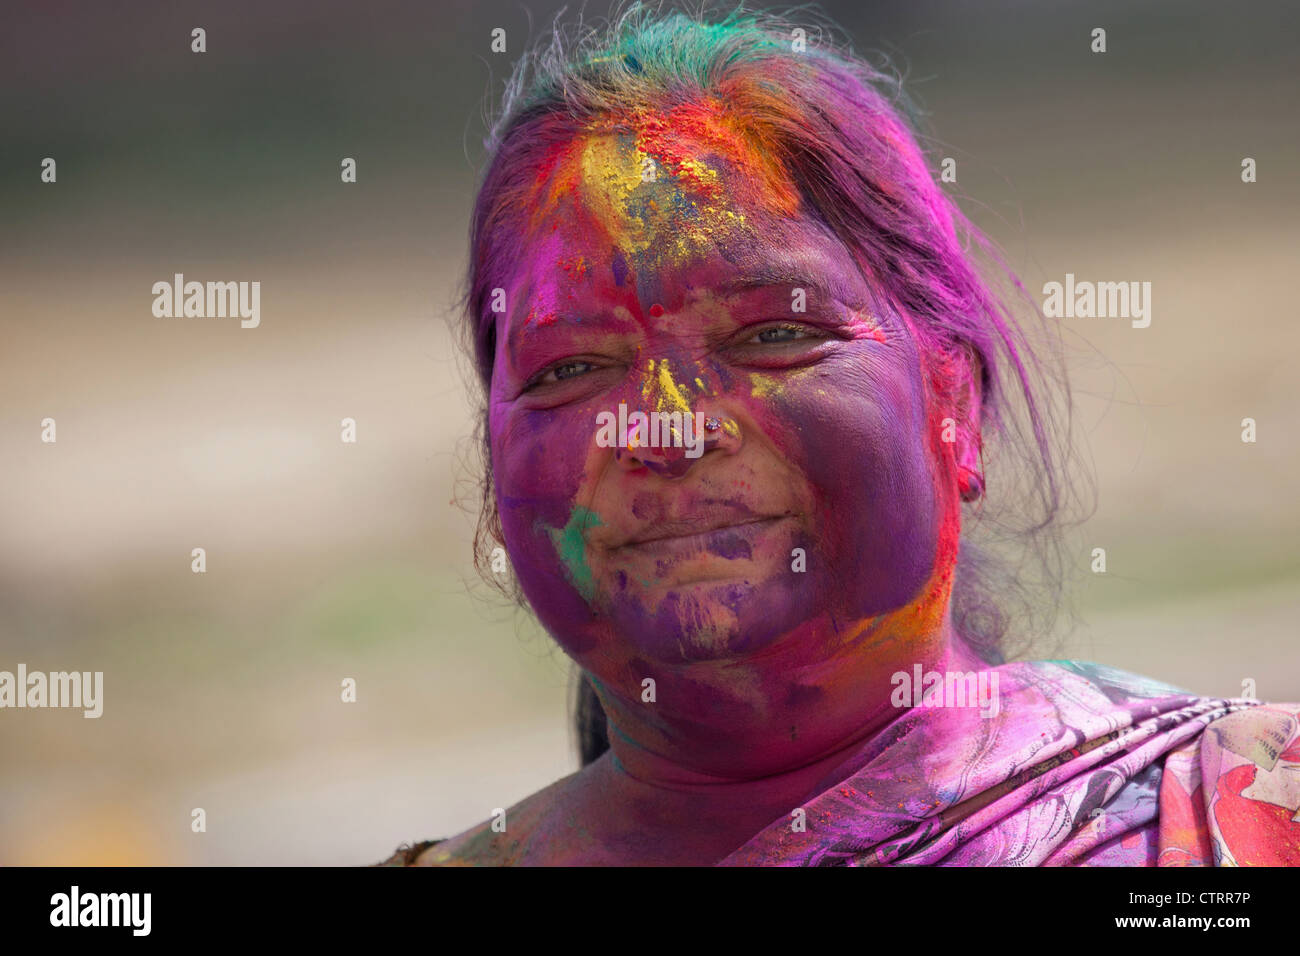 Woman covered in colourful dye celebrating the Holi festival, Festival of Colours in Mathura, Uttar Pradesh, India - Stock Image